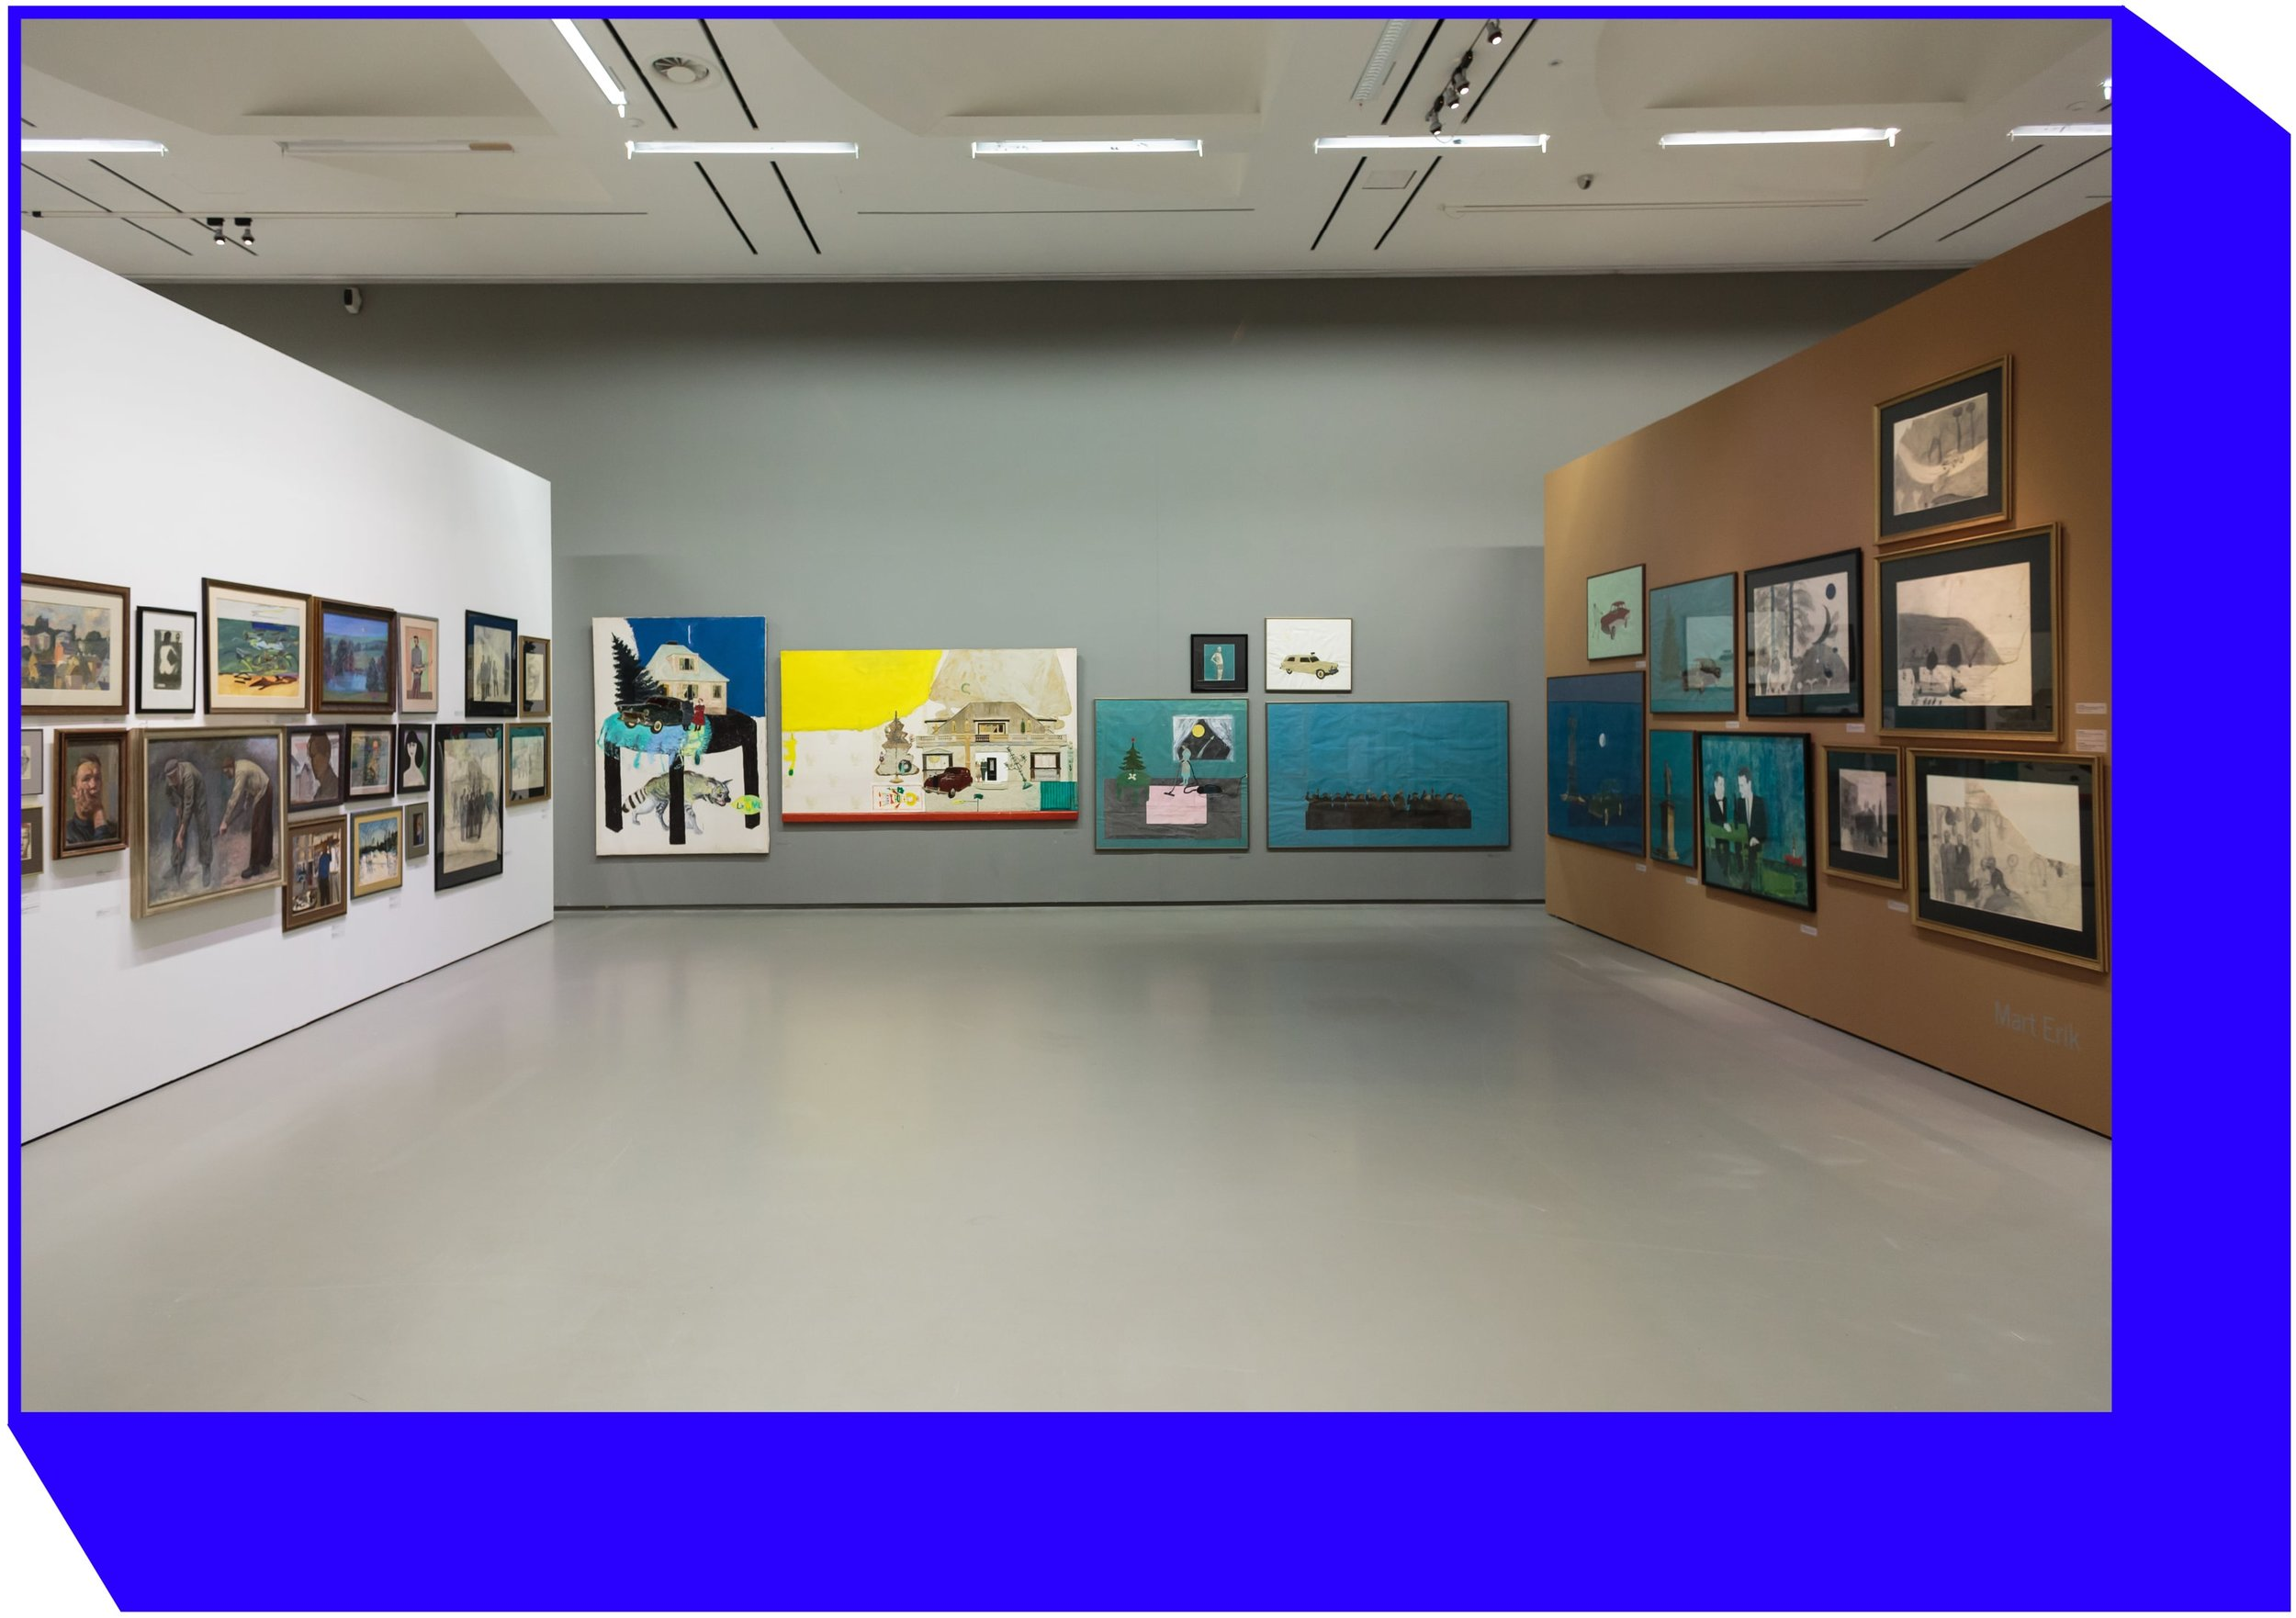 Exposition of Mart Erik collection at the exhibition  Silent Collections. Privately Owned Lithuanian and Estonian Art from the Second Half of the 20th Century.  Photo   by Tomas Kapočius.